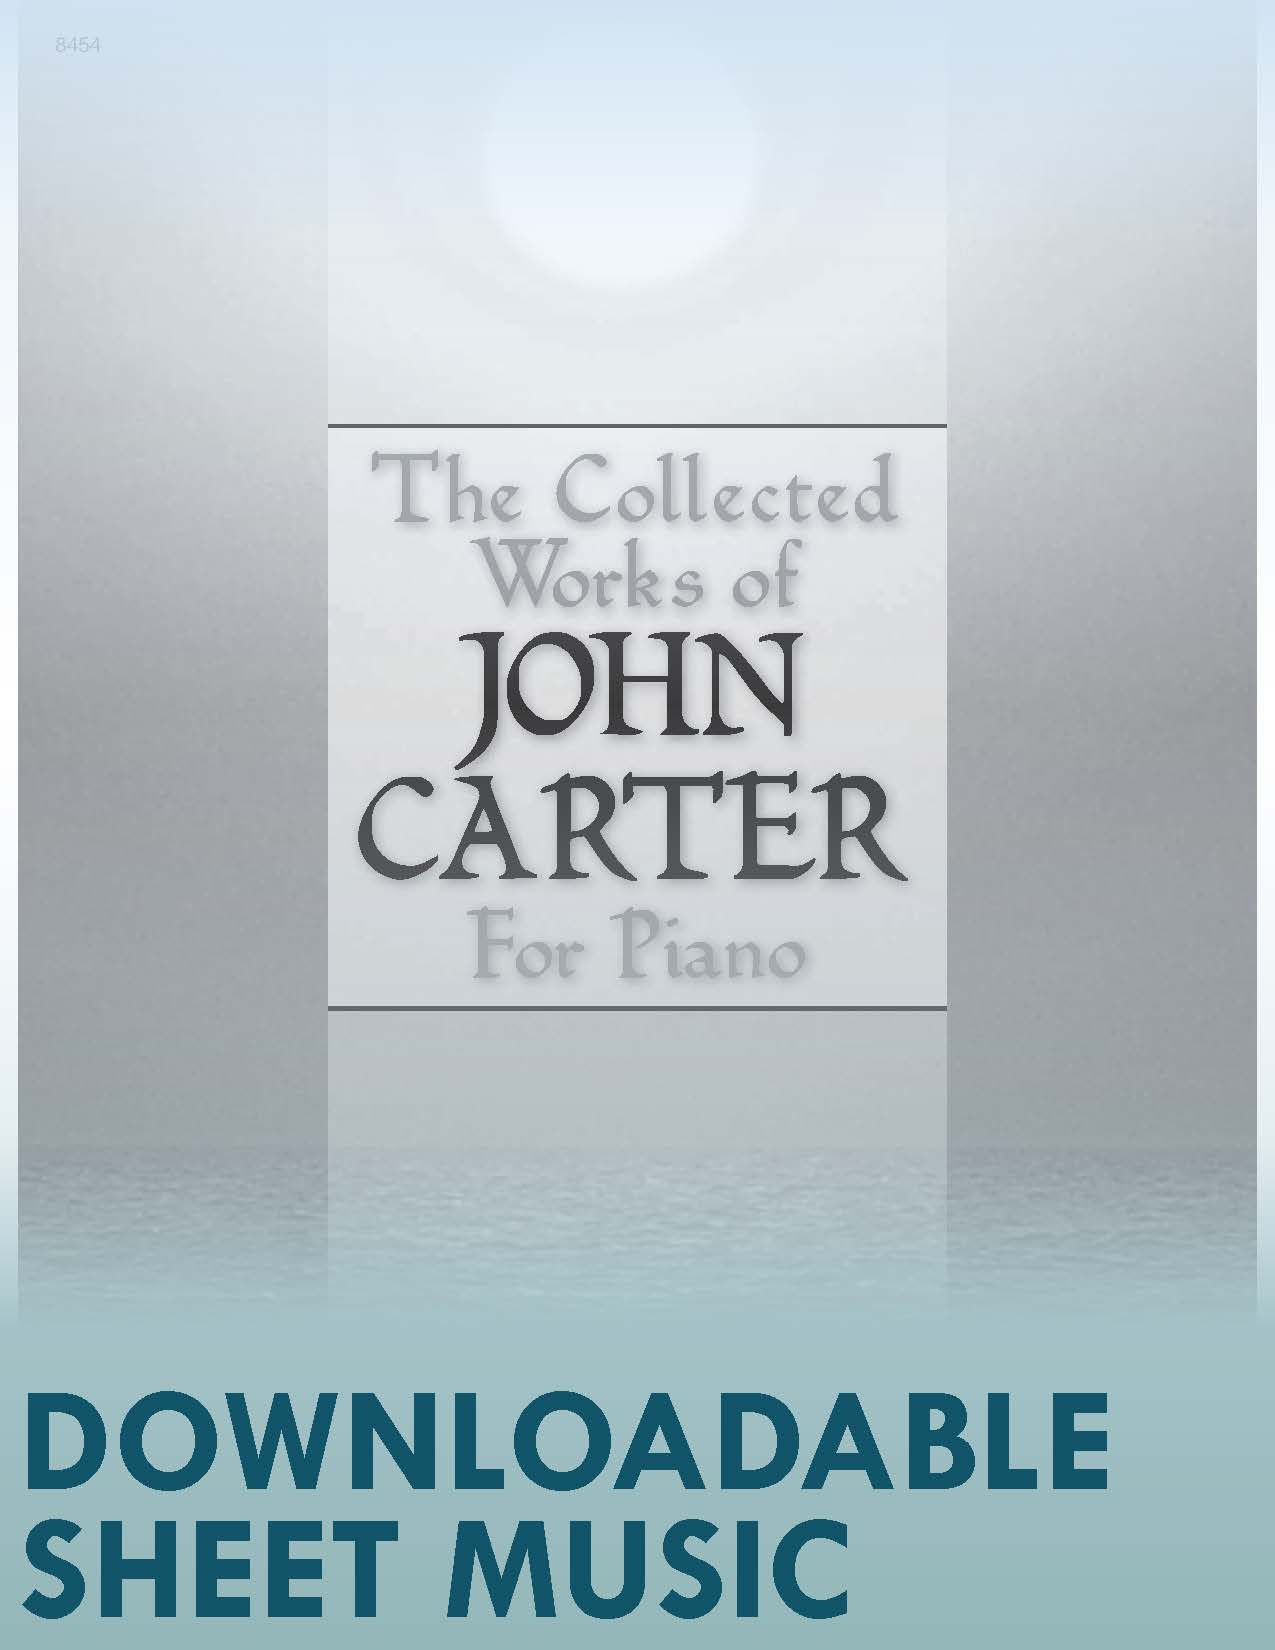 The Collected Works of John Carter (Digital Download)